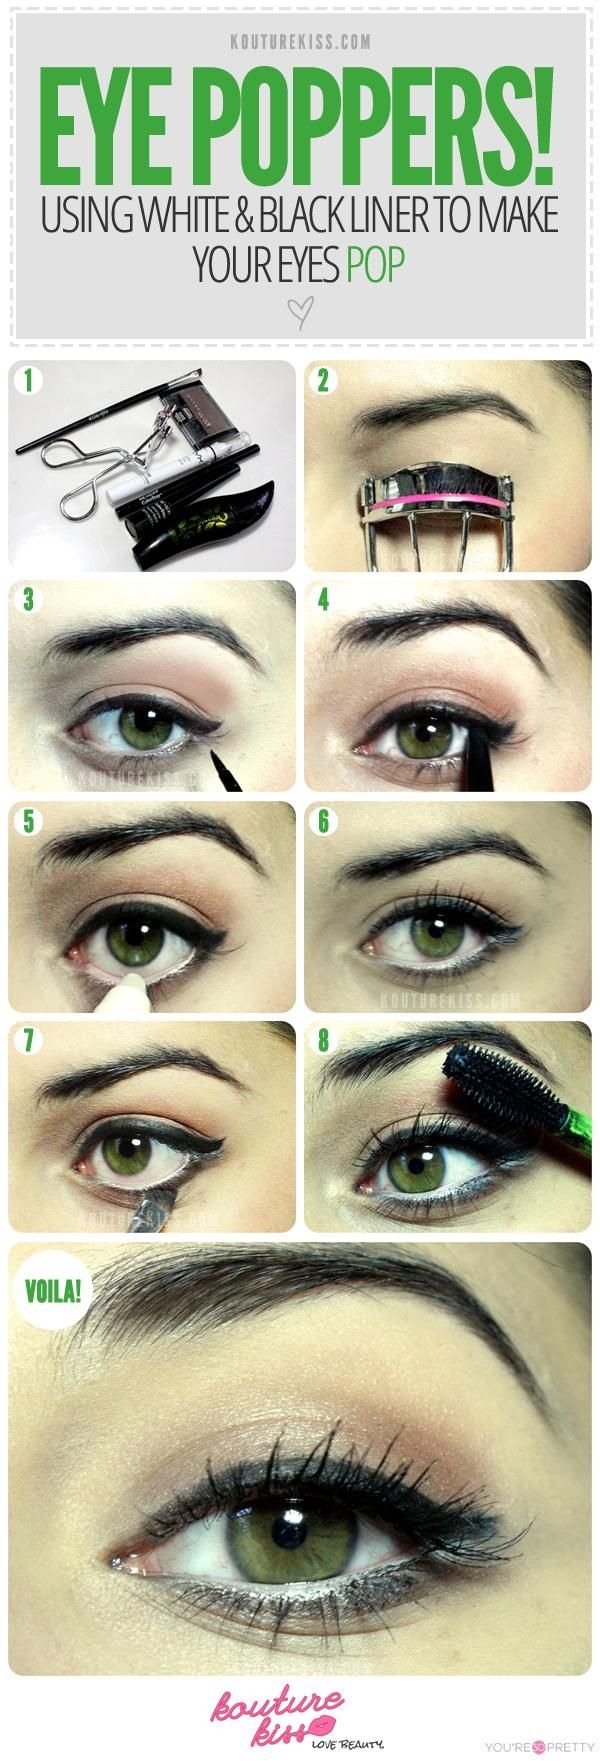 Eye Poppers | | How To Apply Eye Makeup, tutorials, and makeup tips at You're So Pretty | #youresopretty | youresopretty.com